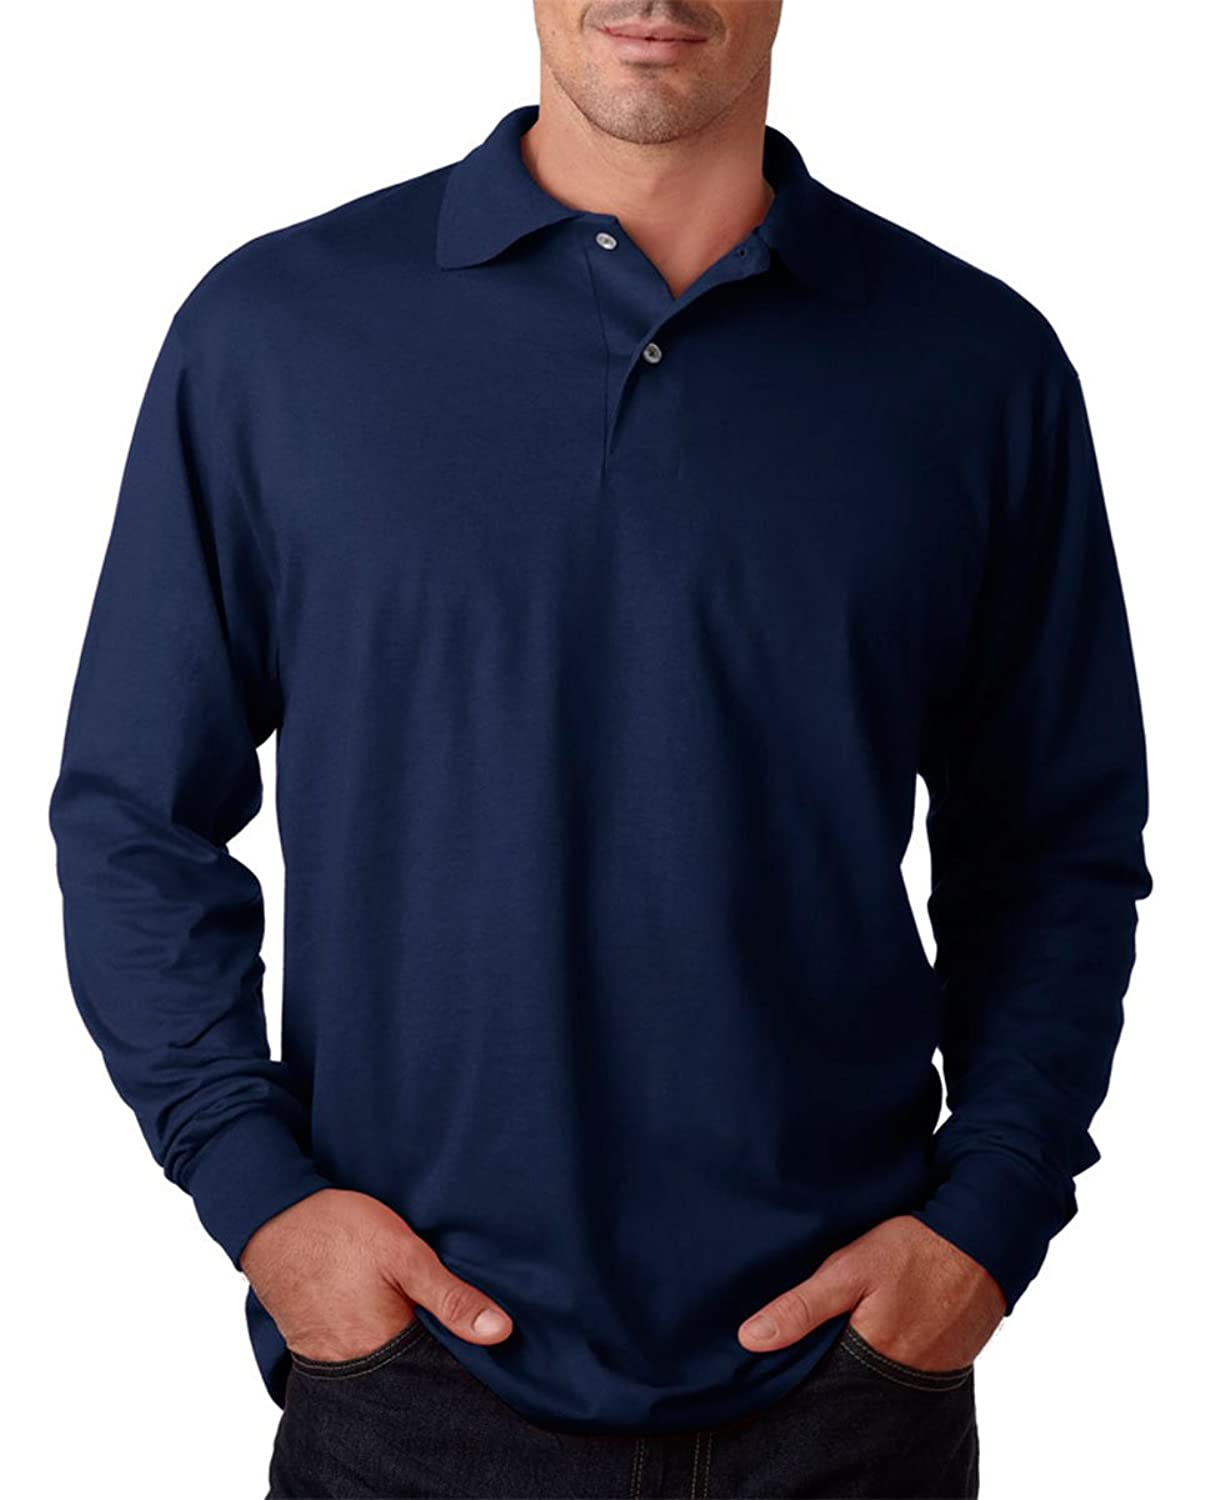 Jerzees Adult Long-Sleeve Jersey Polo with SpotShield - J Navy - S